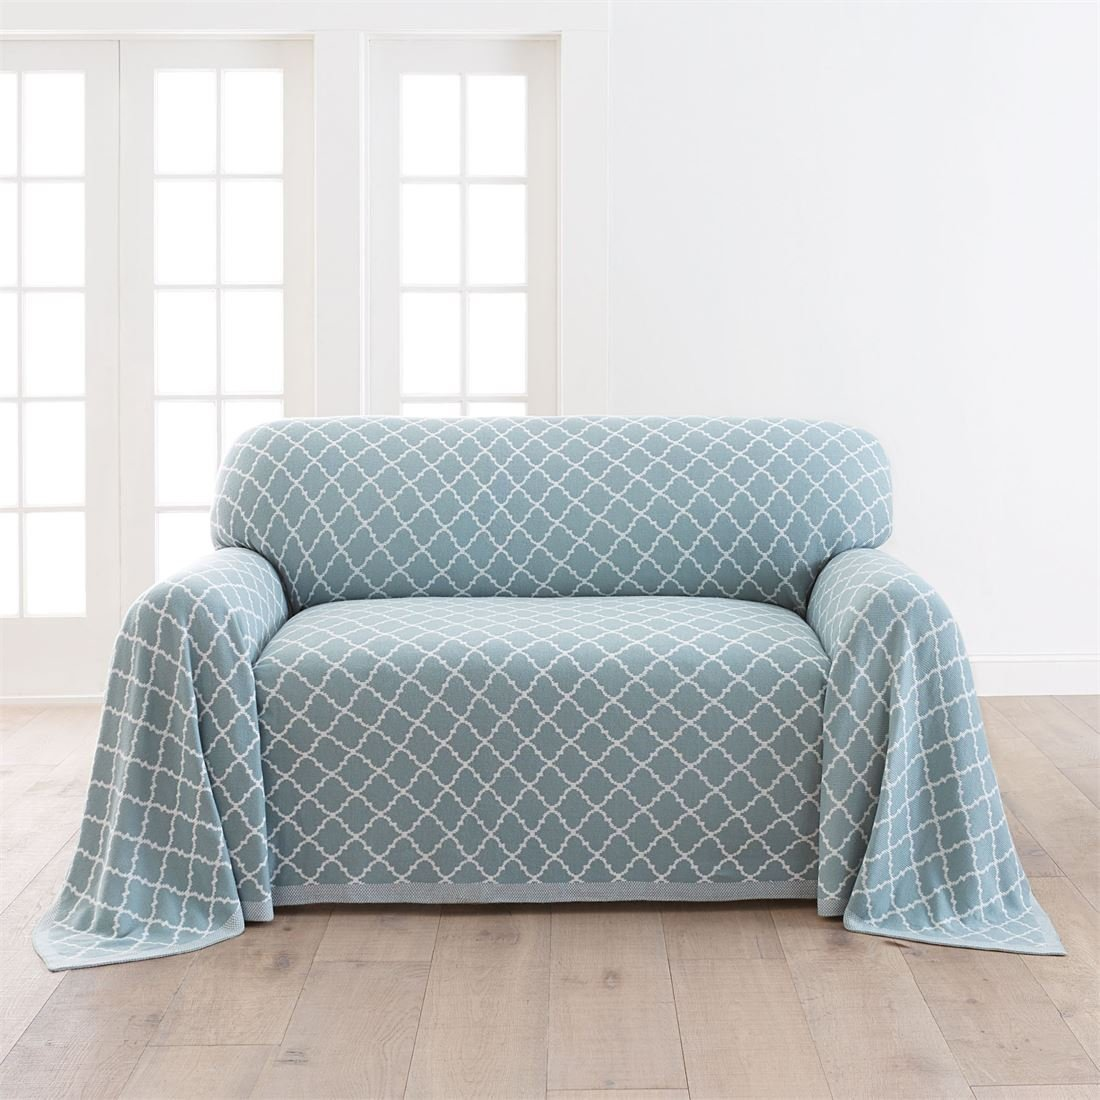 BrylaneHome Ogee Knitted Loveseat Cover (Spa,0)